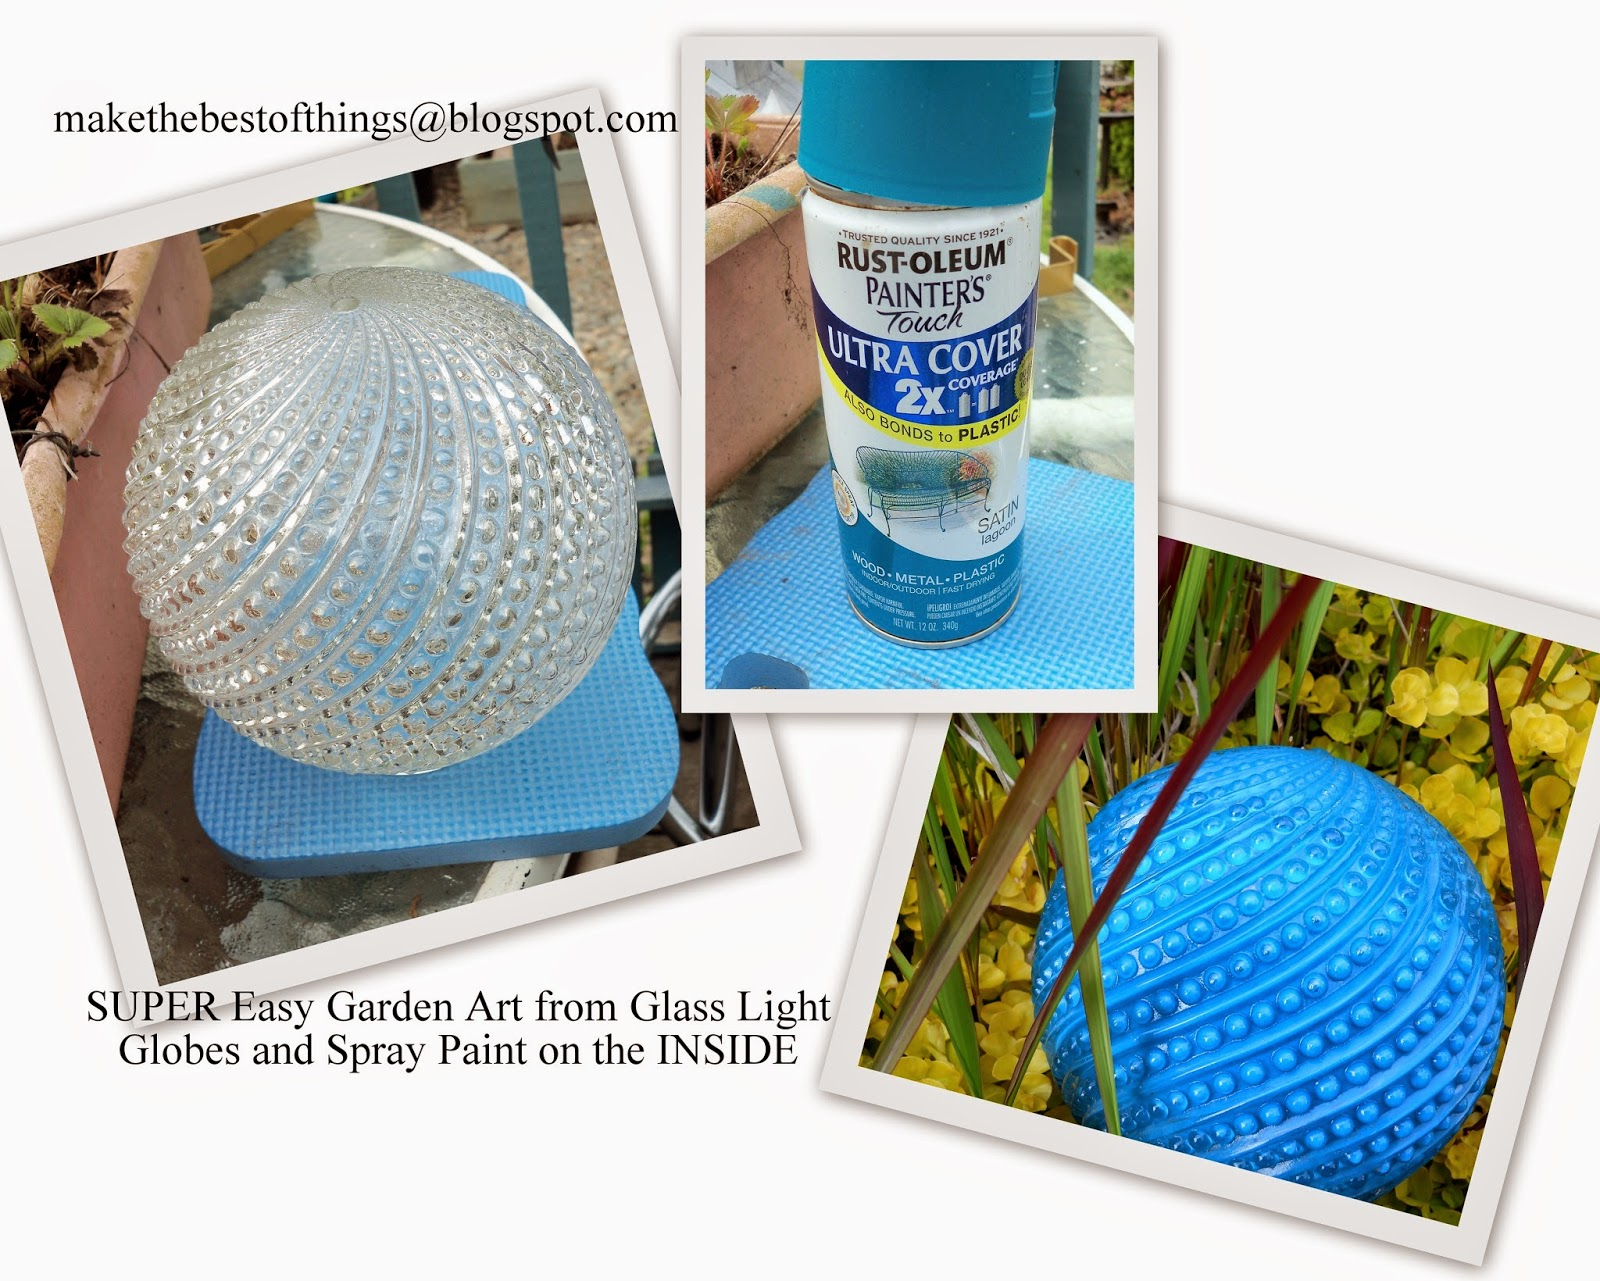 Perfect DIY Garden Art SUPER EASY Glass Garden Balls From Lamp Globes